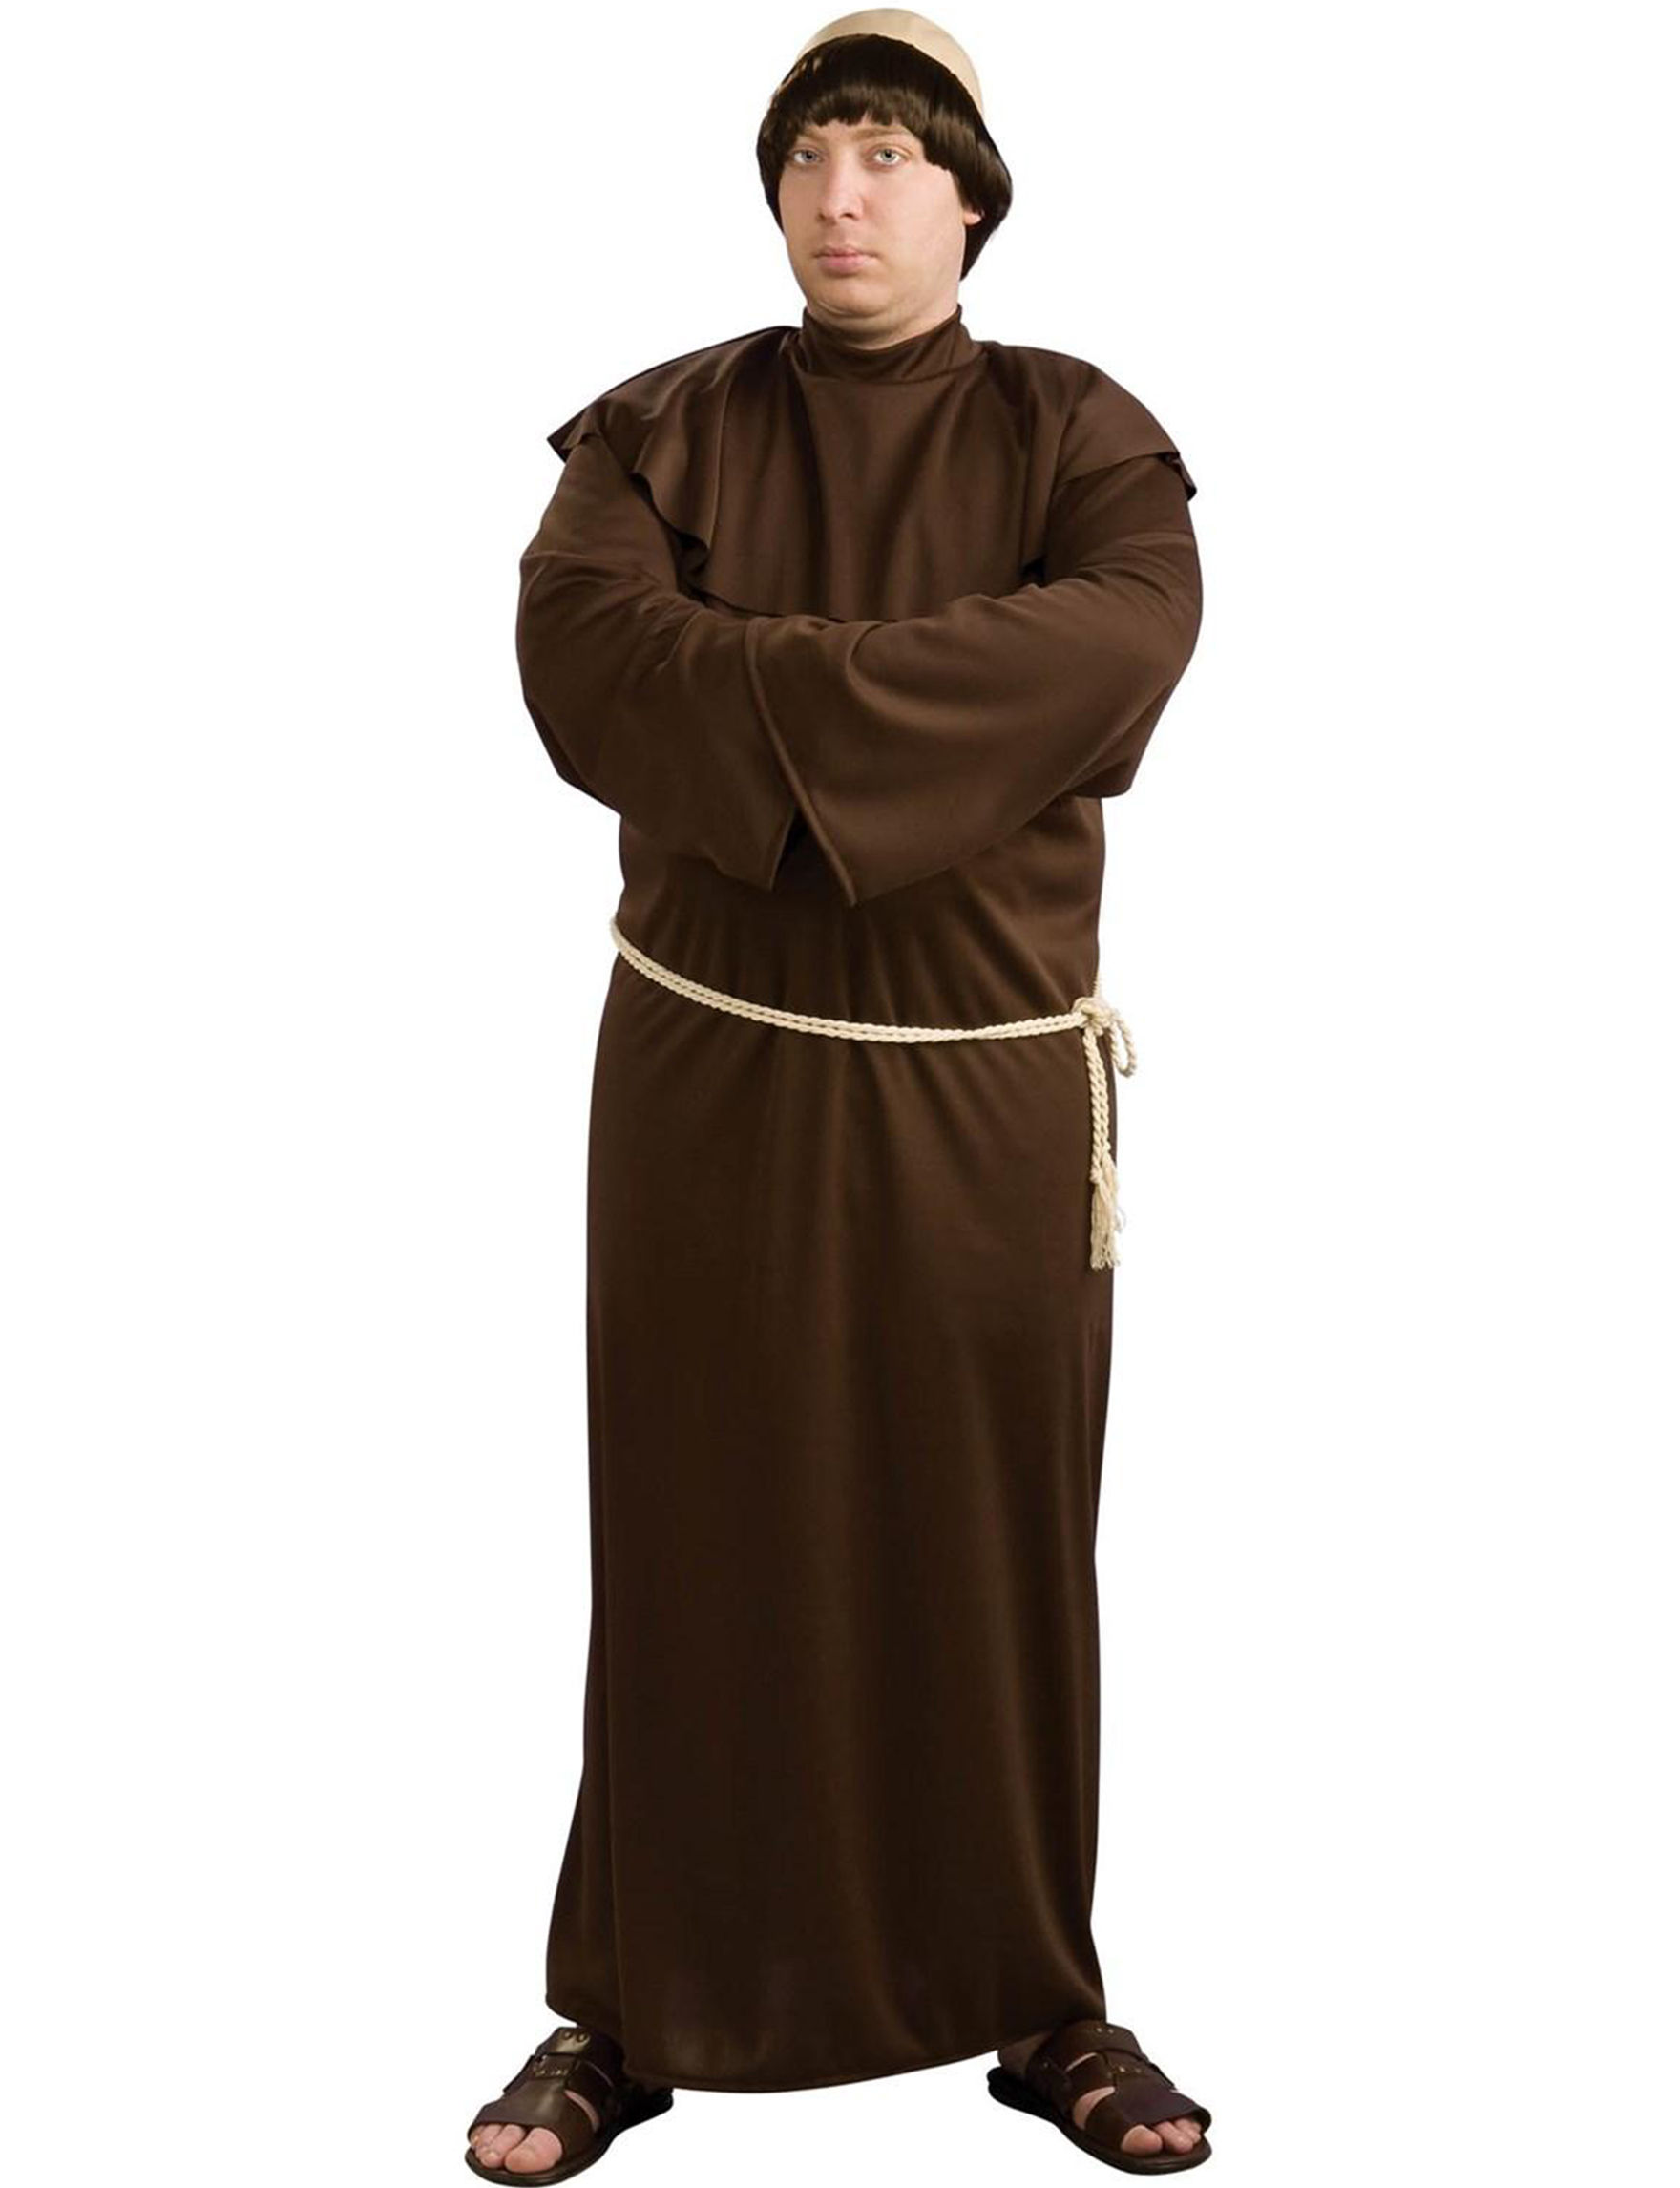 Monk Adult Costume  sc 1 st  Stage Stores & 3-pc. Monk Adult Costume | Stage Stores